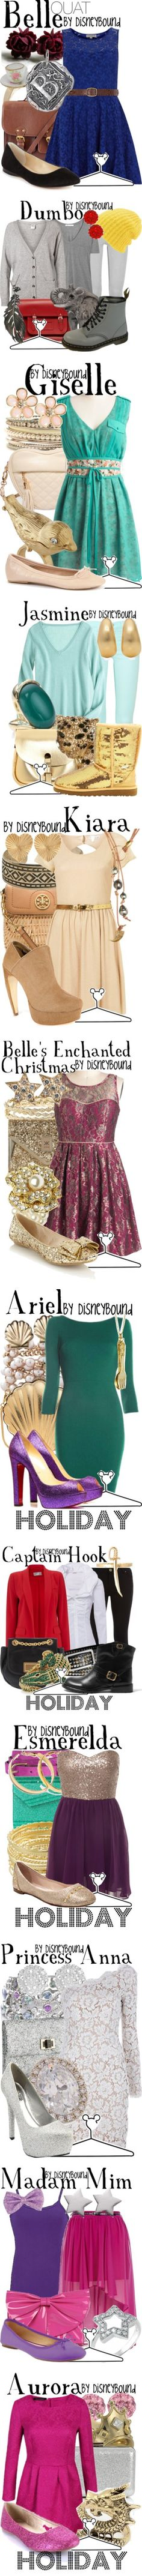 """Disney Fashions"" by carlakay ❤ liked on Polyvore"